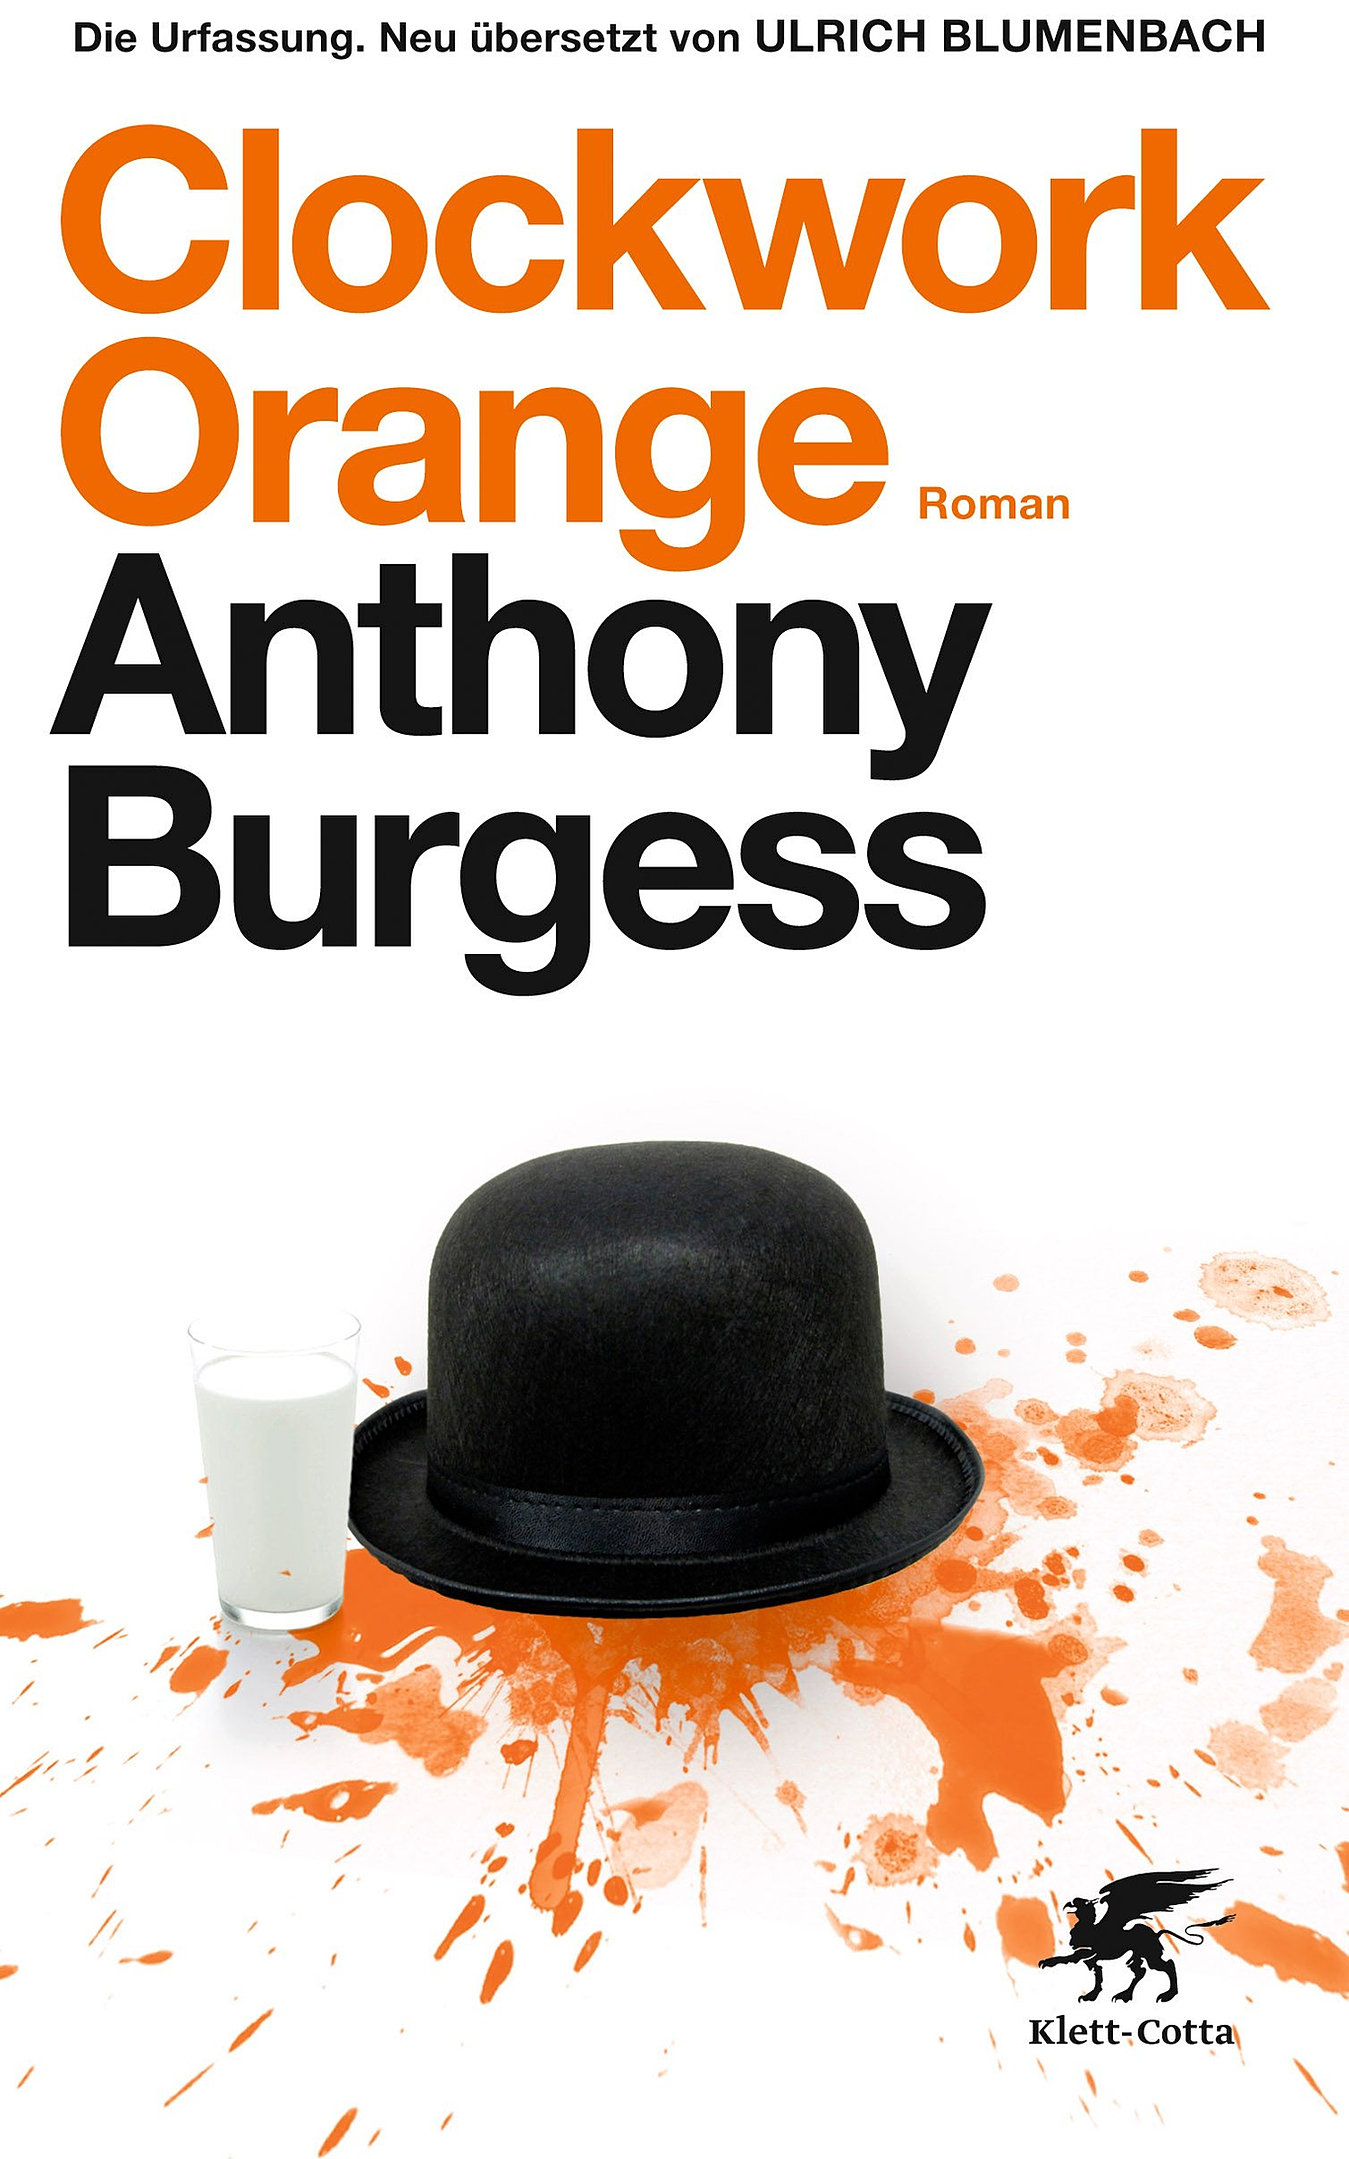 an analysis of the free will in a clockwork orange by anthony burgess This detailed literature summary also contains bibliography and a free quiz on a clockwork orange by anthony burgess 12/9/04 published in 1962, anthony.